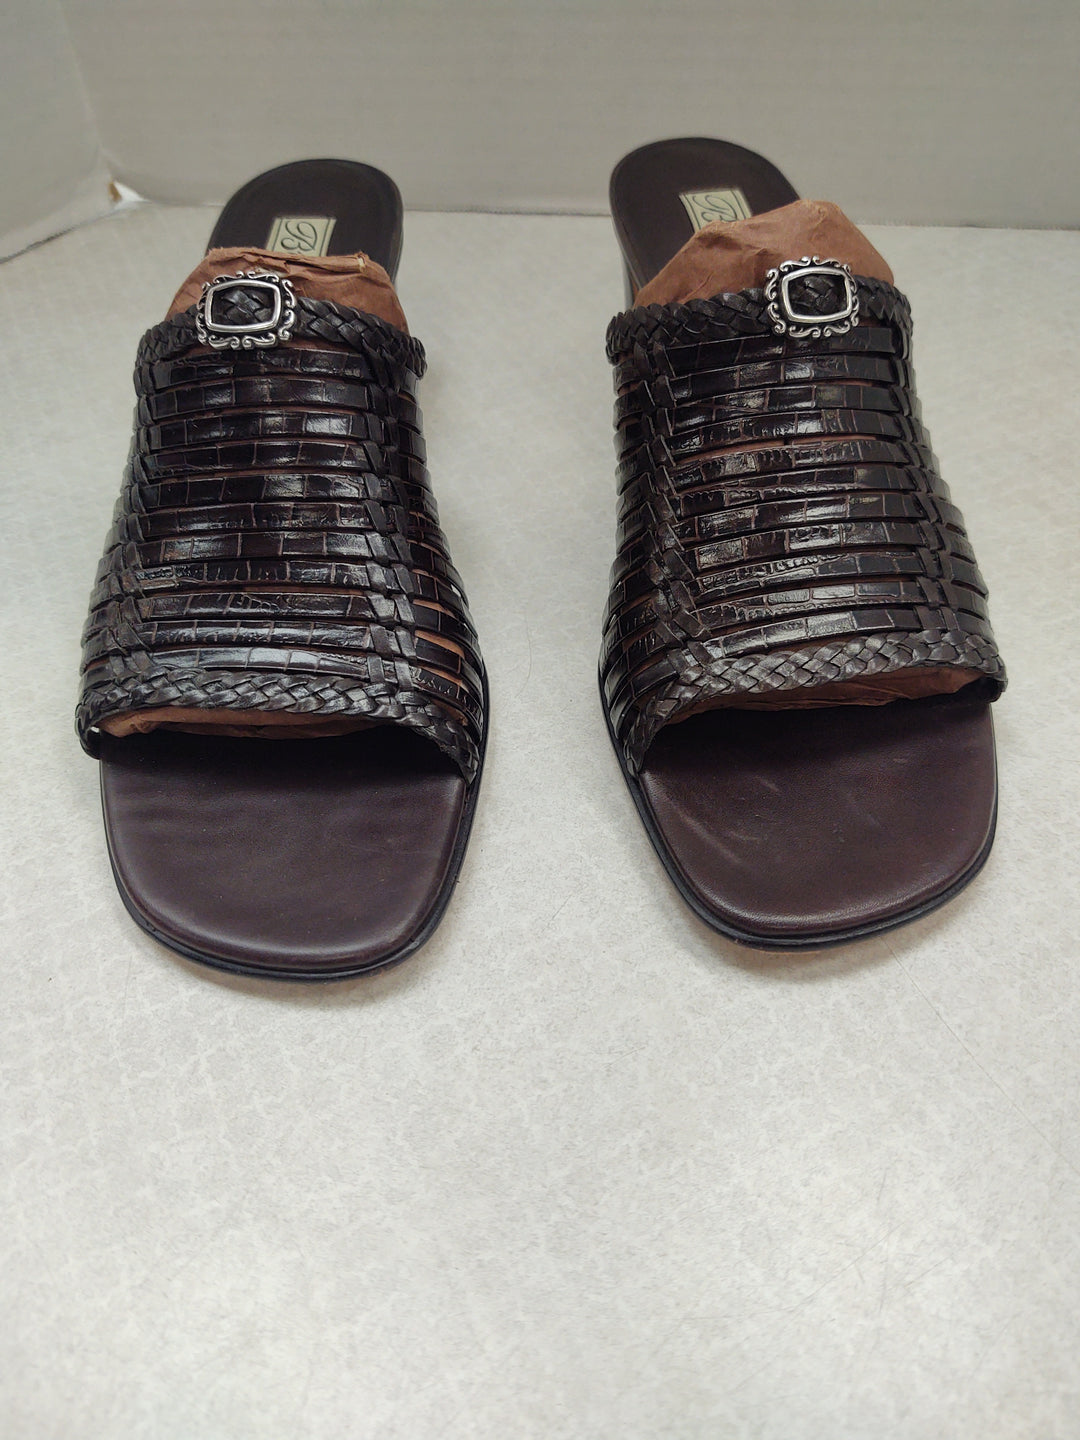 Primary Photo - BRAND: BRIGHTON O <BR>STYLE: SANDALS LOW <BR>COLOR: BROWN <BR>SIZE: 9.5 <BR>SKU: 133-13316-112779